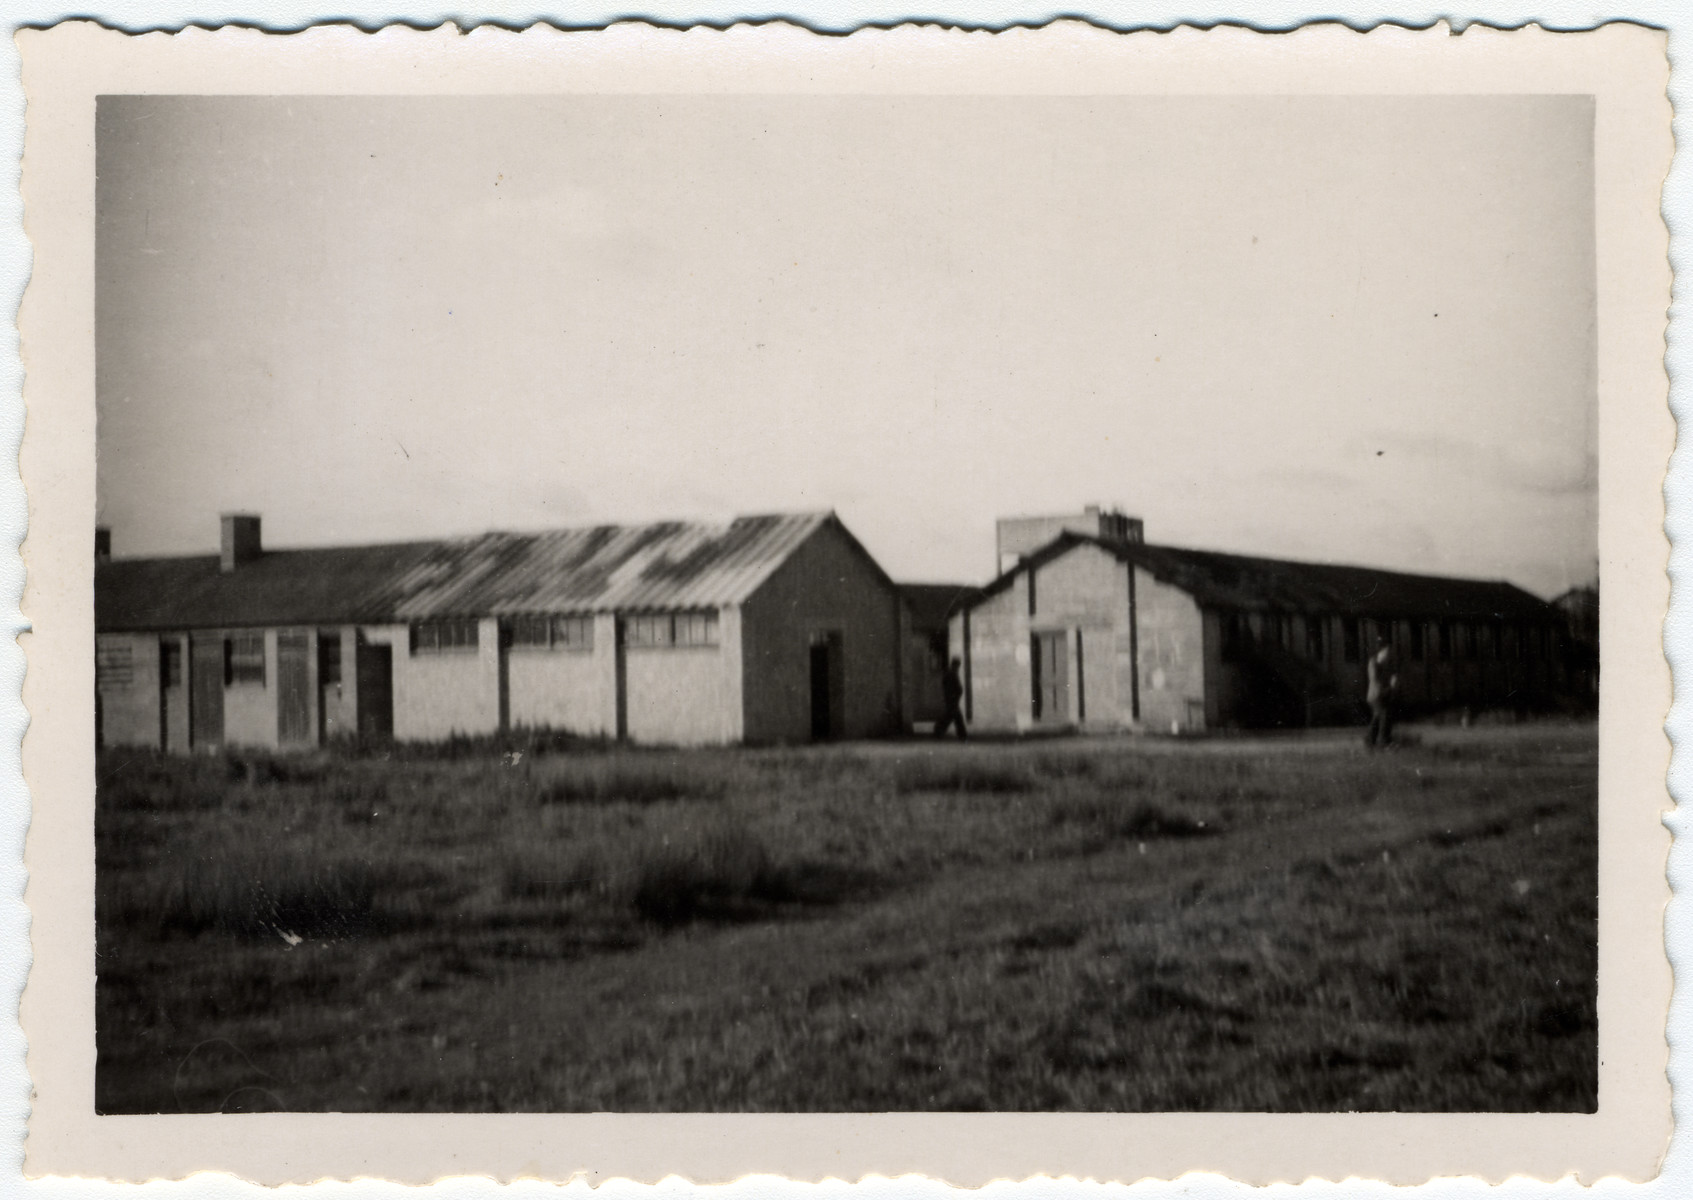 Exterior view of two barracks in the Kitchener refugee camp.